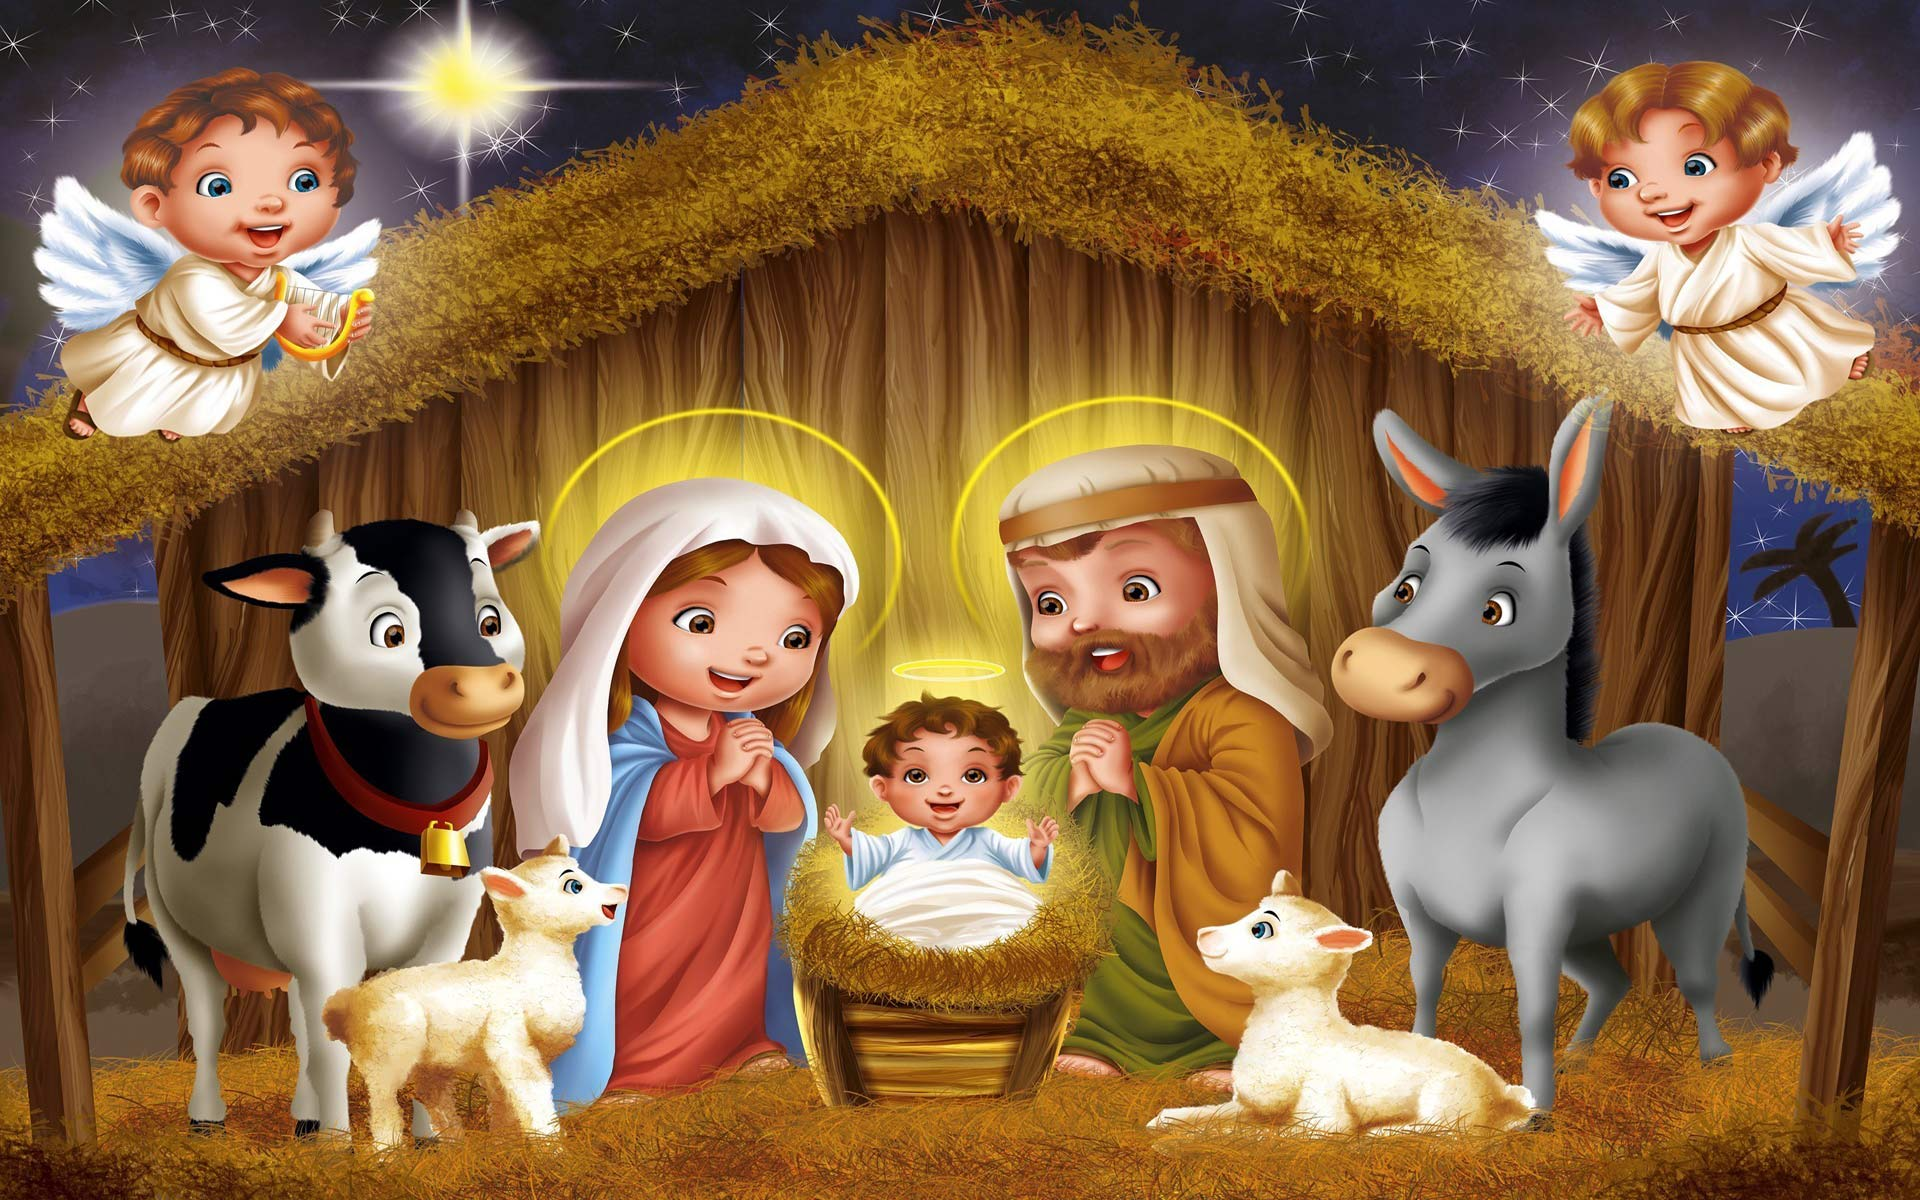 Christmas Nativity Scene Wallpaper - WallpaperSafari